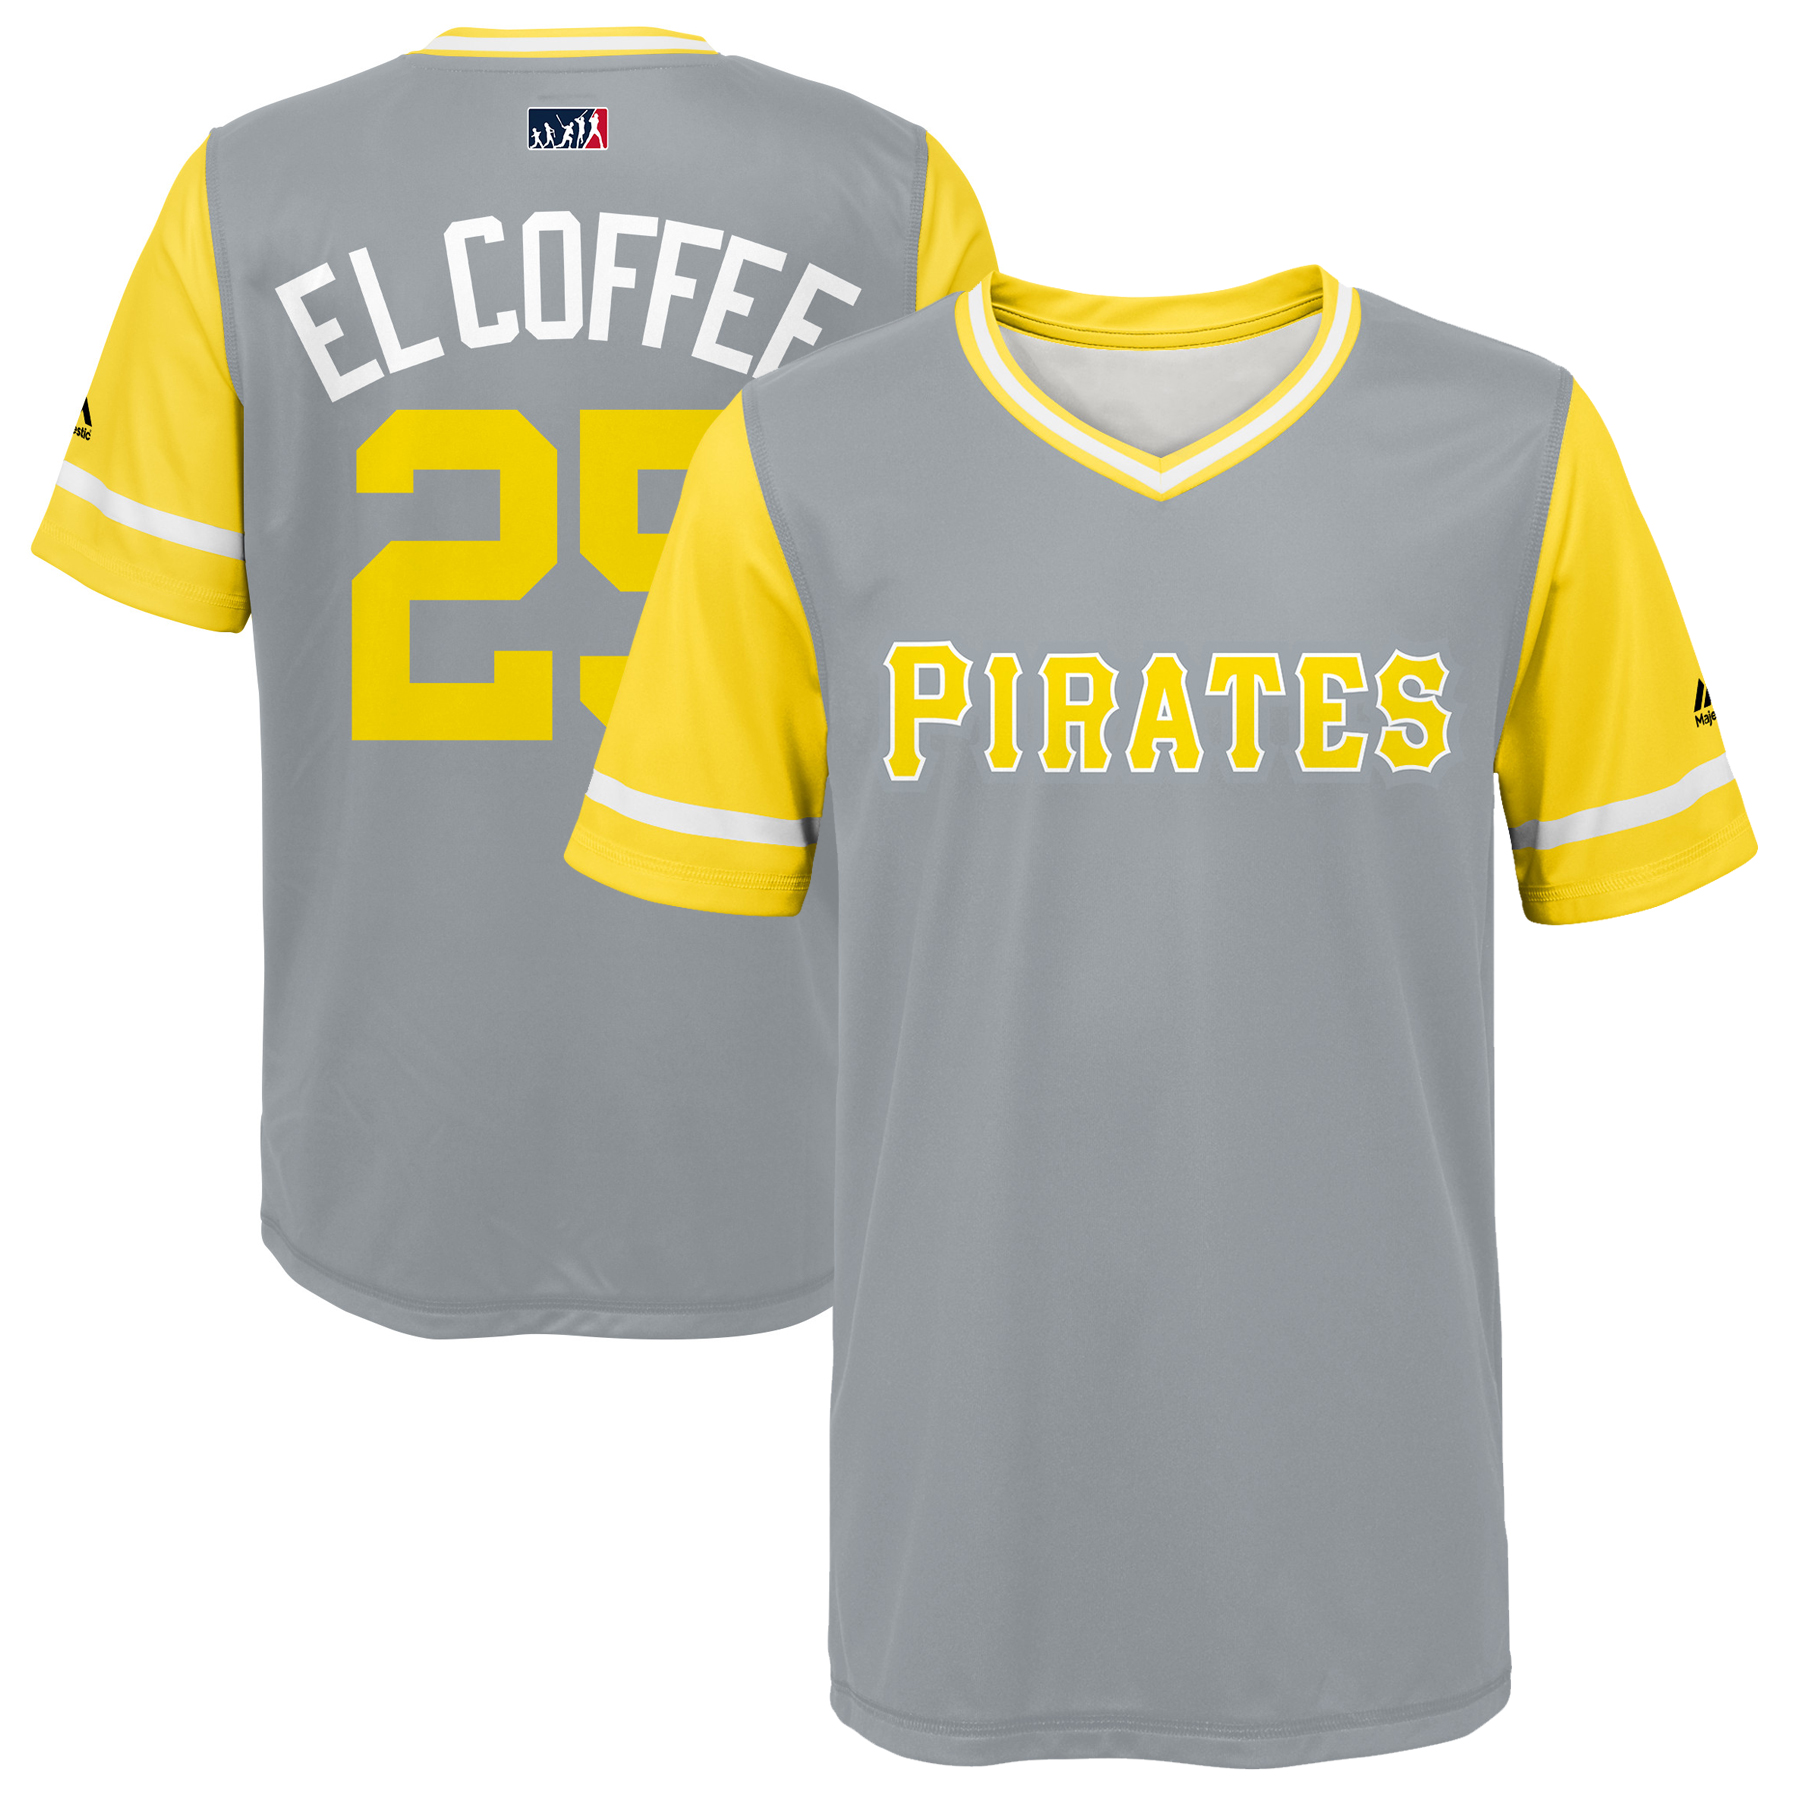 """Gregory Polanco """"El Coffee"""" Pittsburgh Pirates Majestic Youth 2018 Players' Weekend Jersey - Gray/Yellow"""